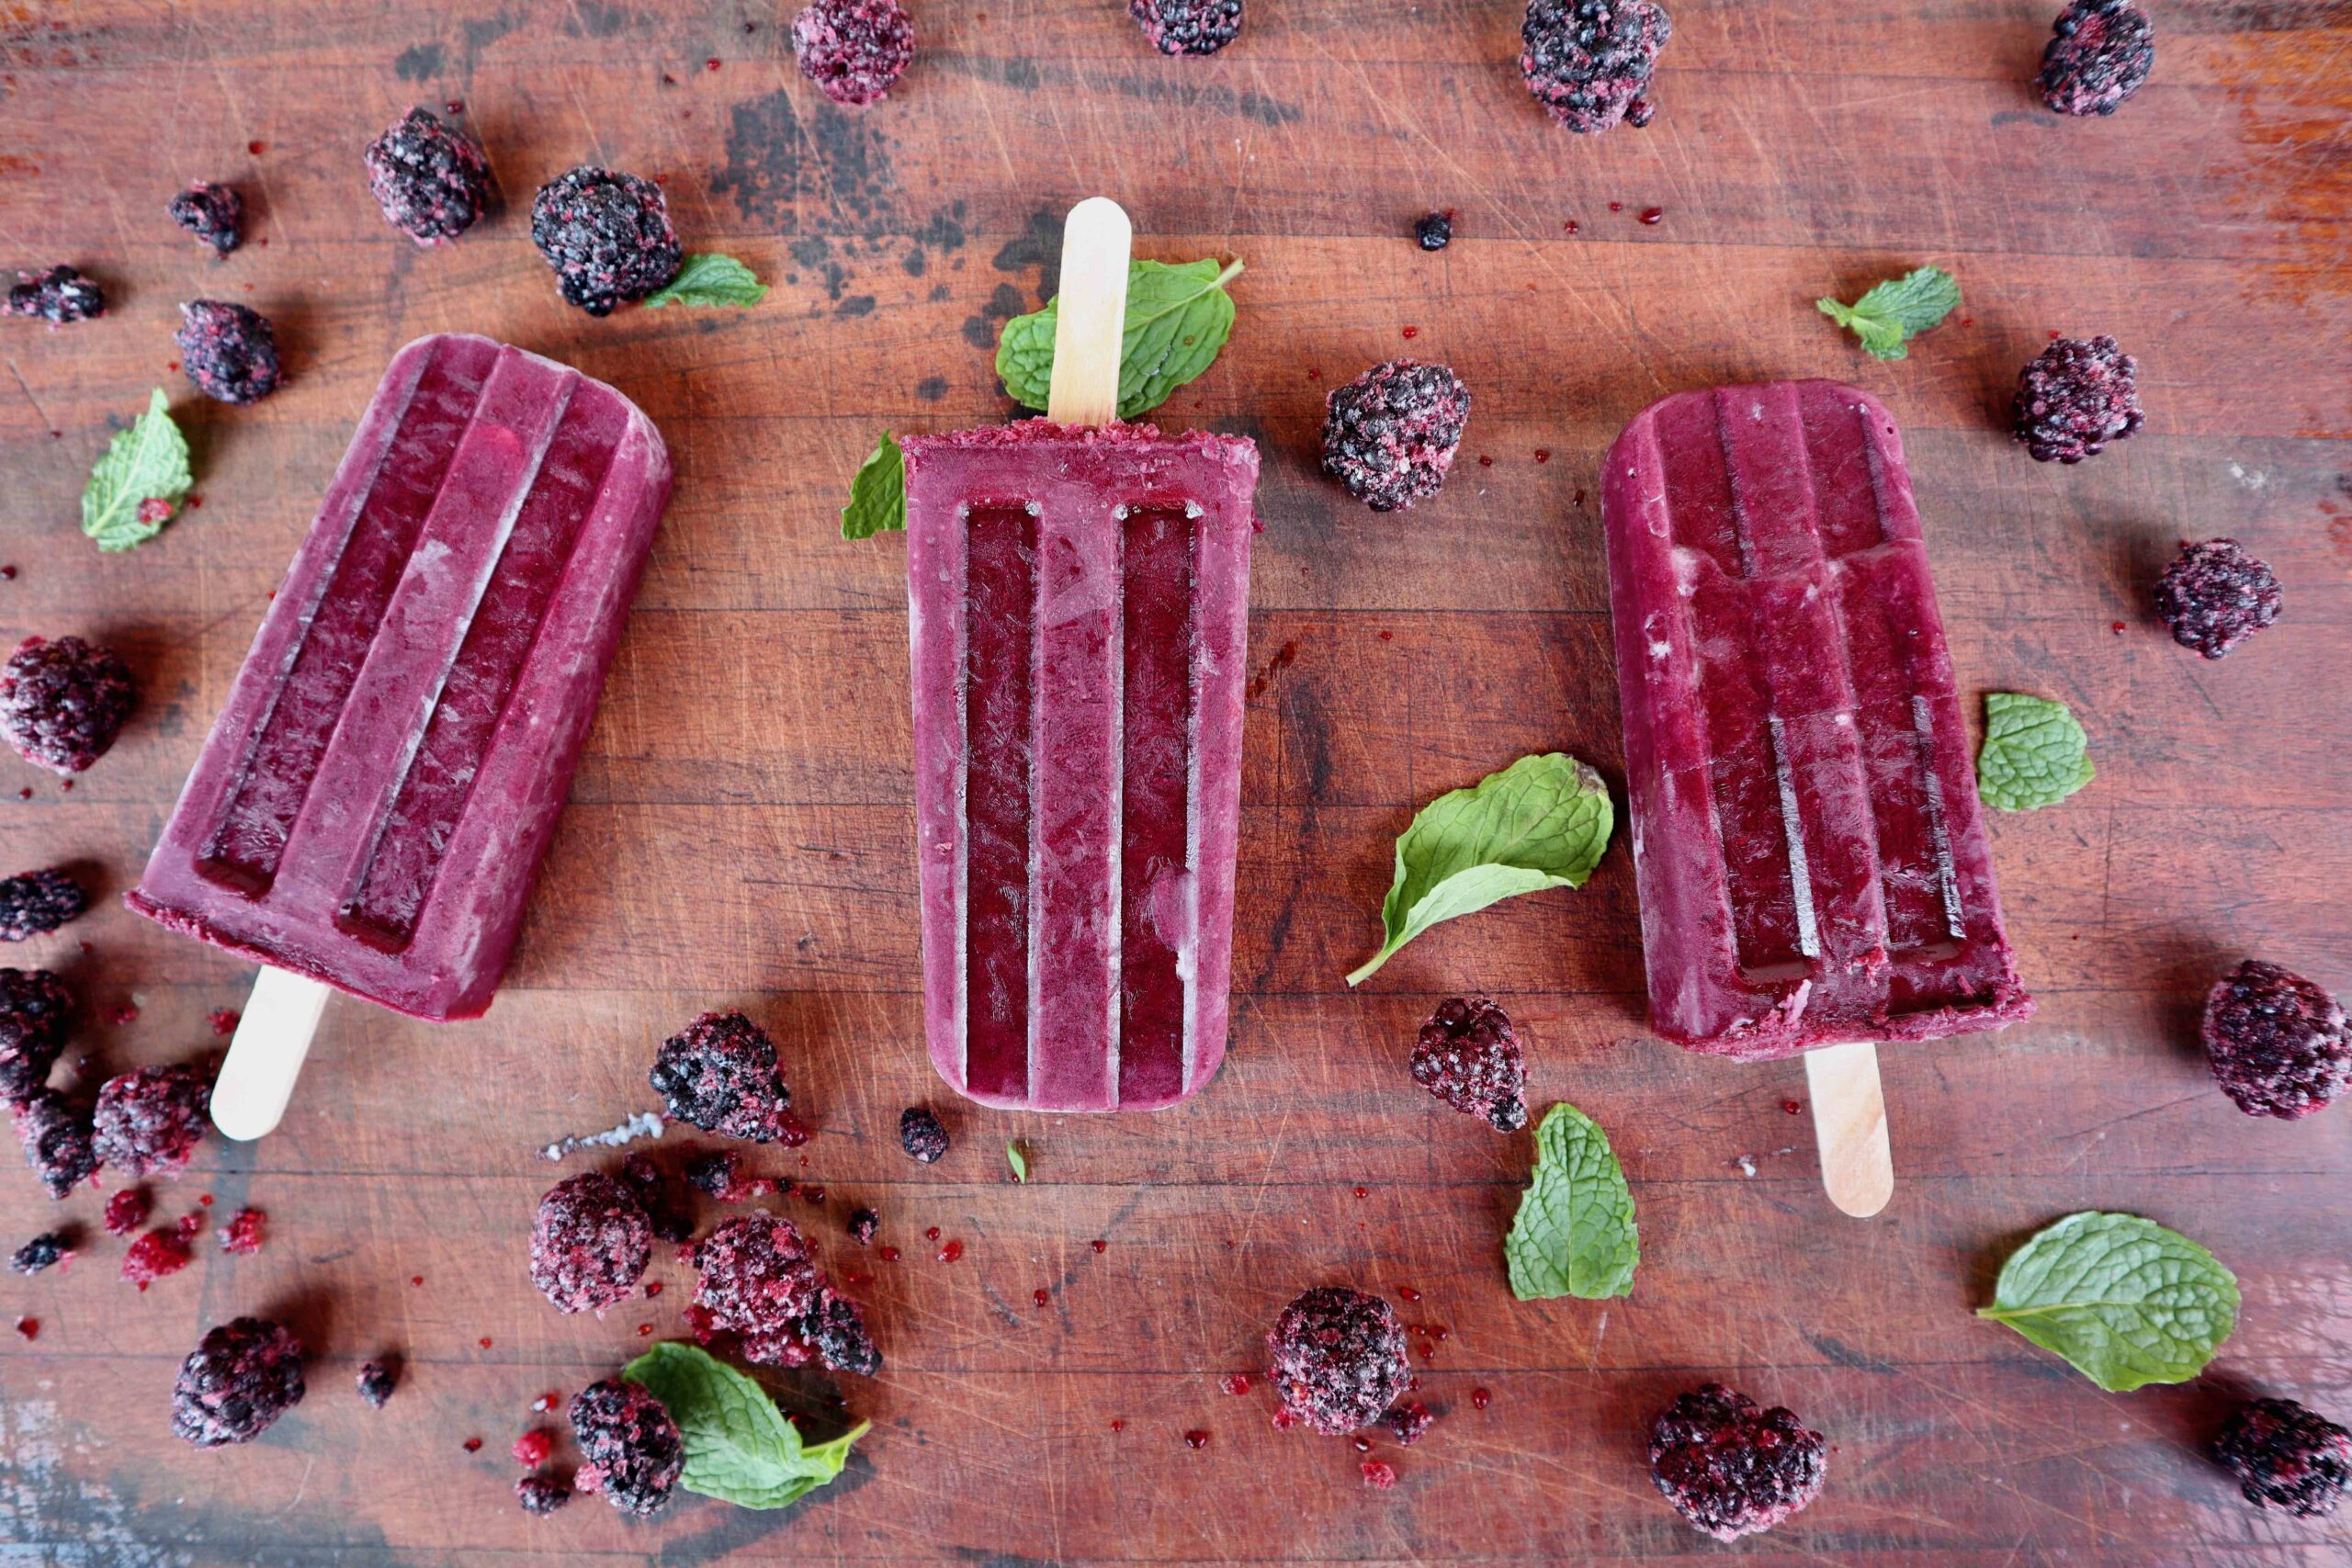 Berry popsicles on a wood board surrounded by blackberries and mint leaves.